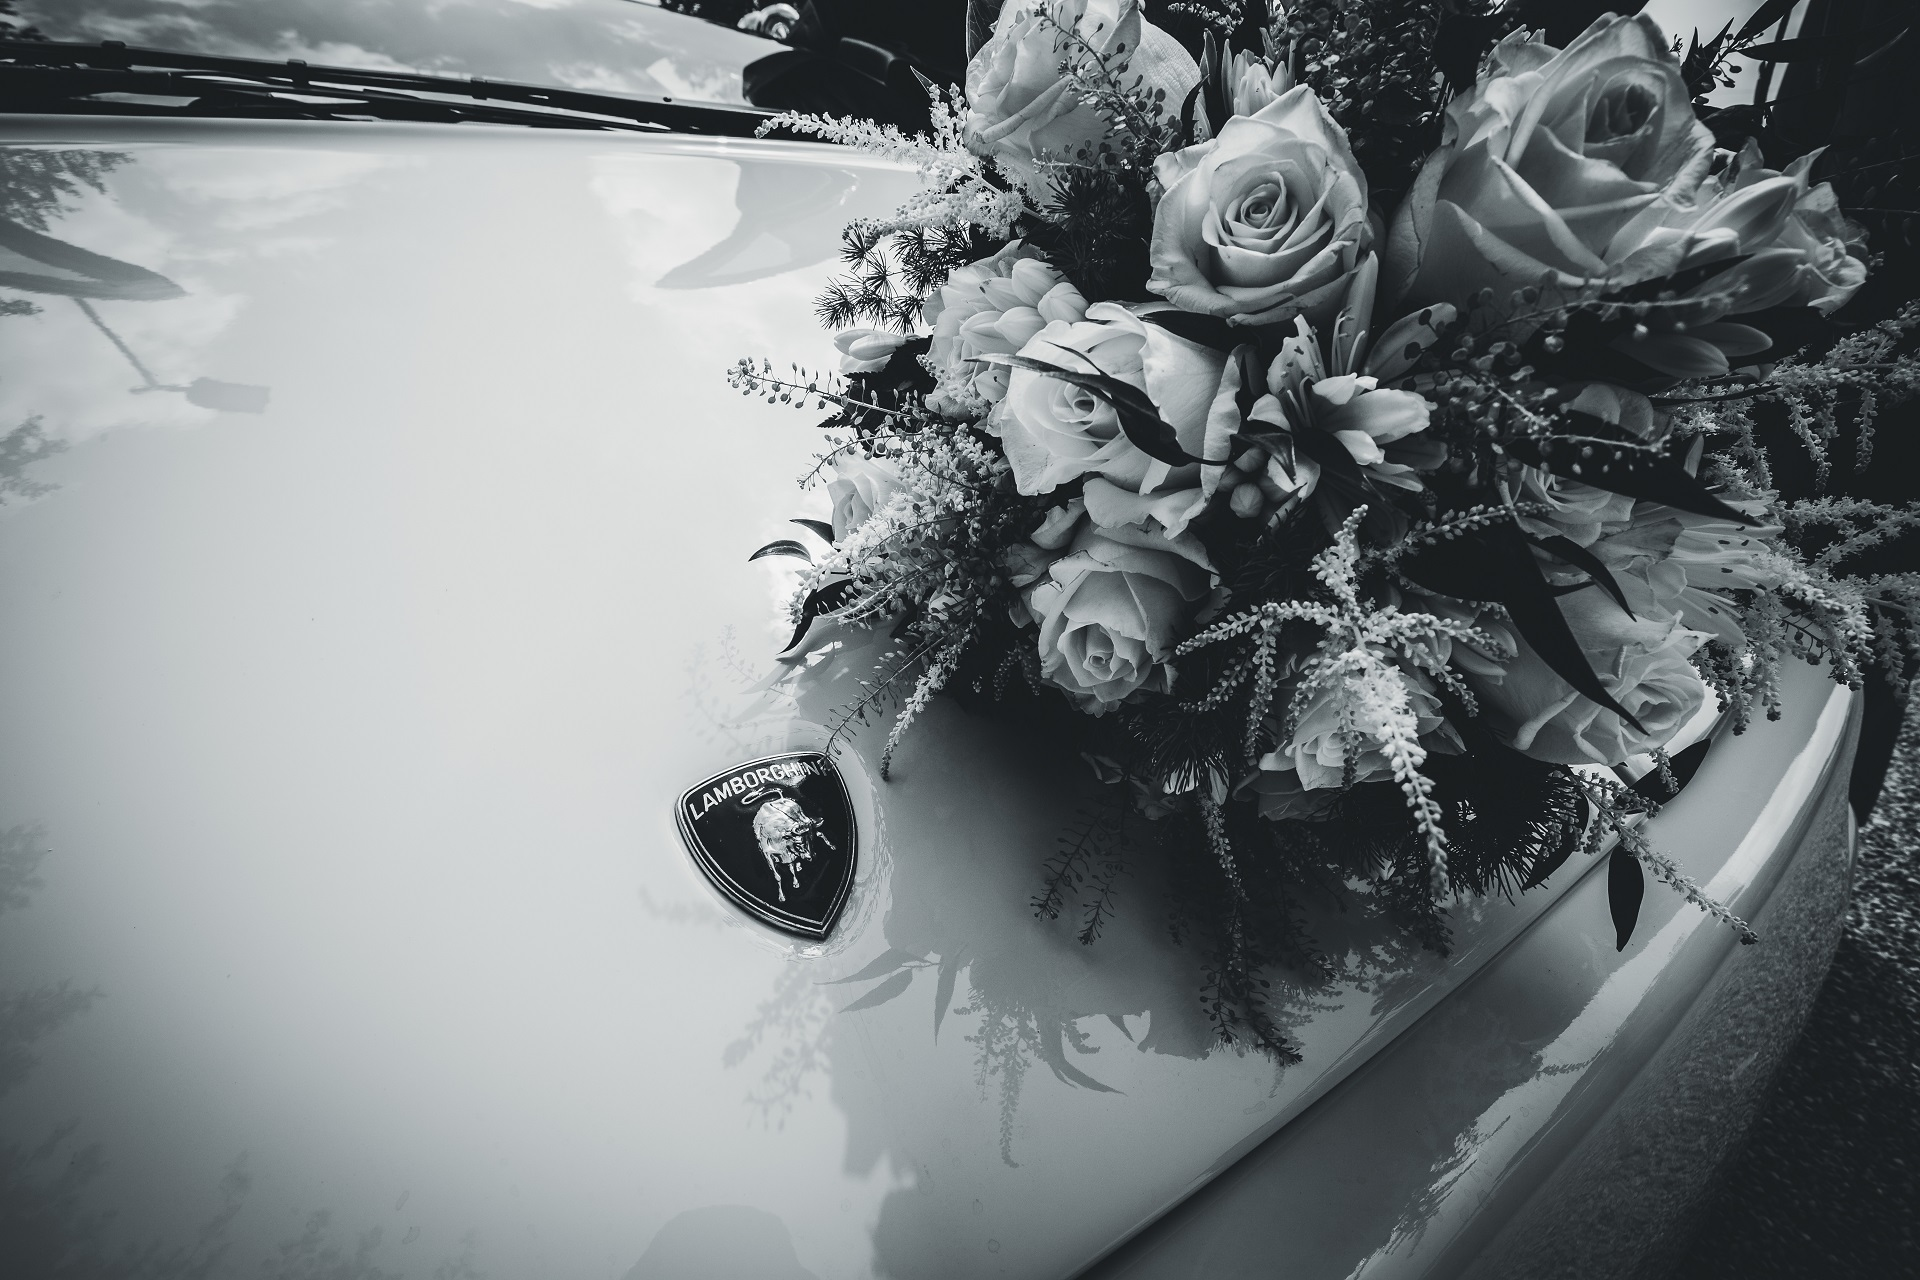 Padua, IT Elopement Car and Bouquet Pictures | The wedding vehicle, a Lamborghini, is beautifully decorated with a large arrangement of roses